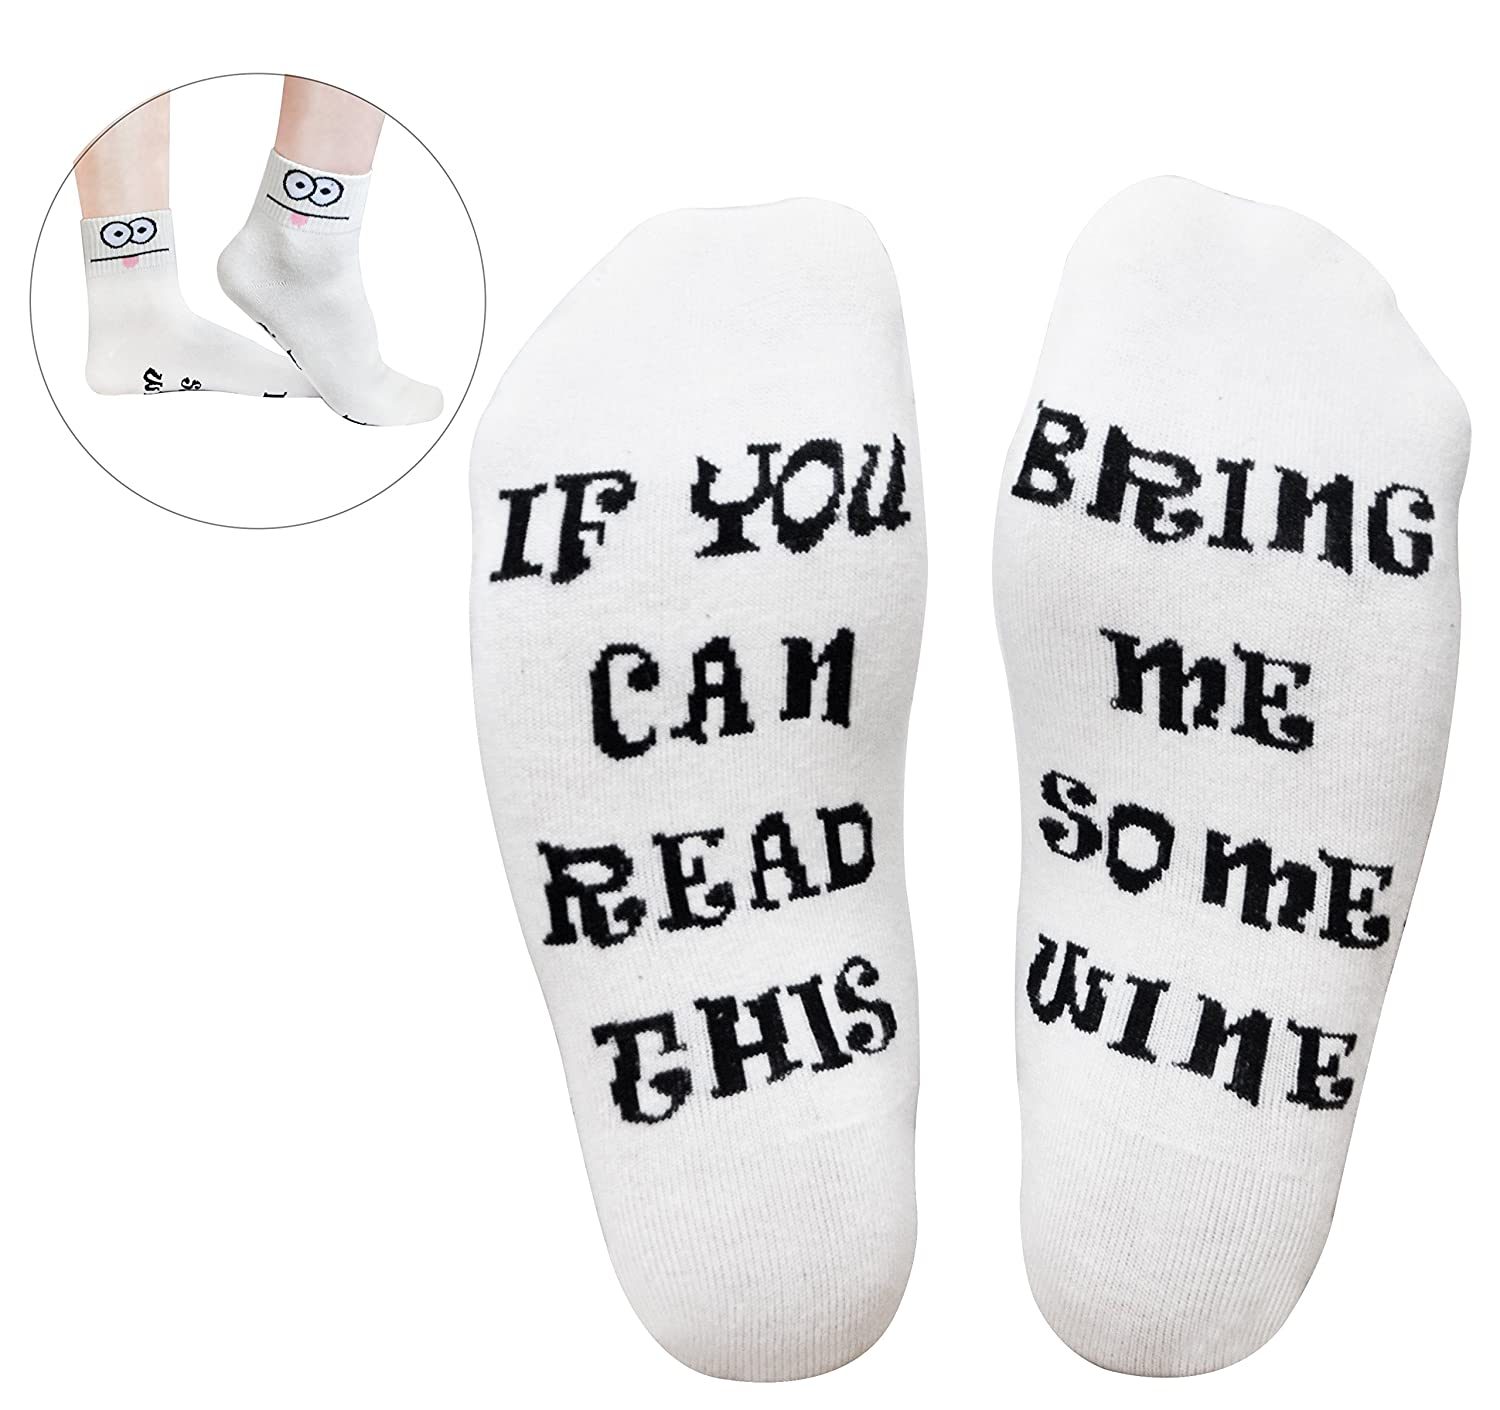 White GoldWorld Novelty Cotton Wine Socks Birthday Gifts For Women Mom Men W Funny Saying If